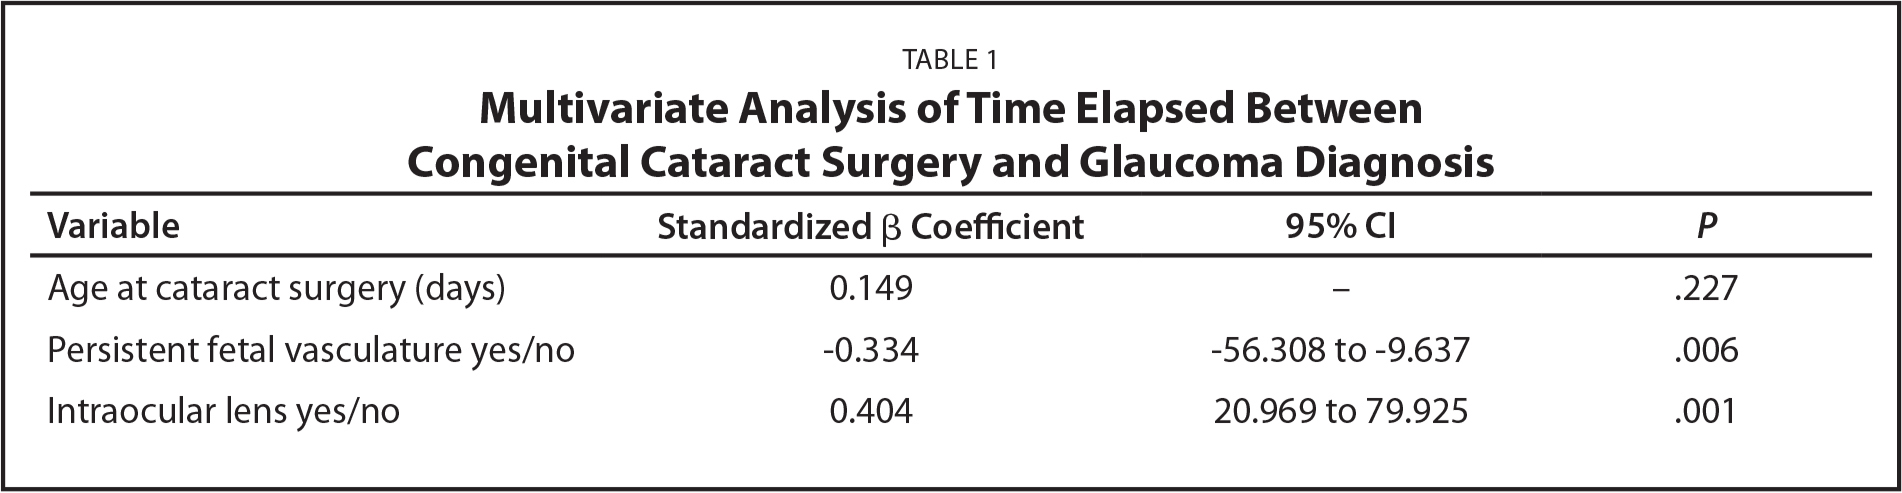 Multivariate Analysis of Time Elapsed Between Congenital Cataract Surgery and Glaucoma Diagnosis